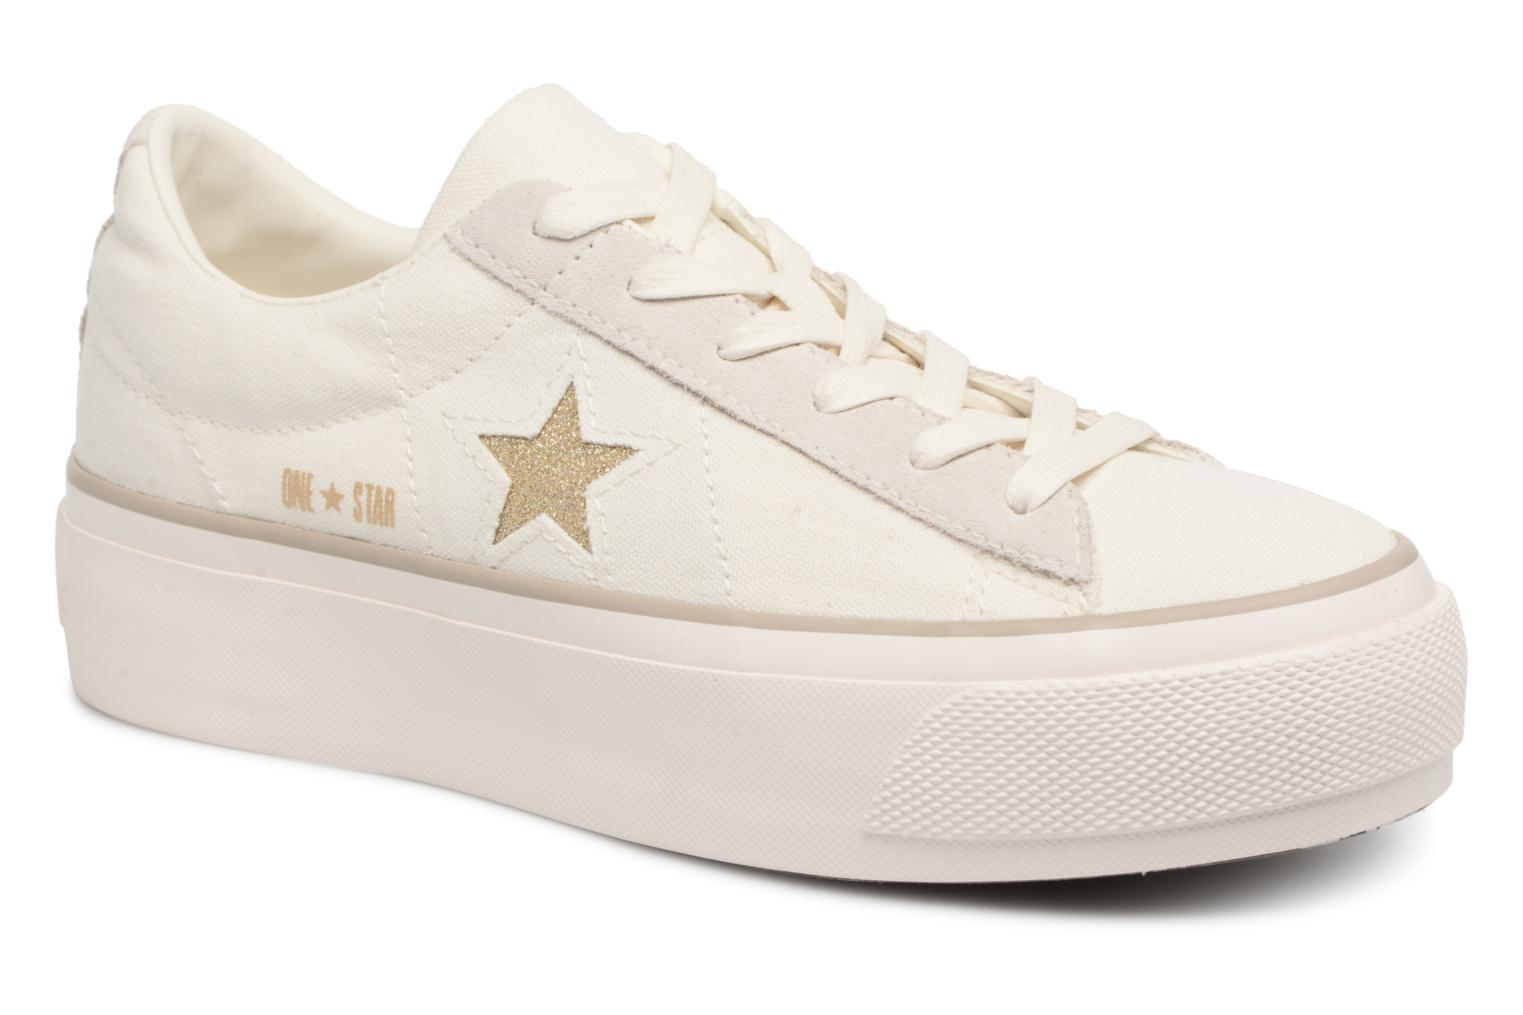 Marques Chaussure femme Converse femme Chuck Taylor All Star Flower Lace Hi Peach Skin/White/Mouse